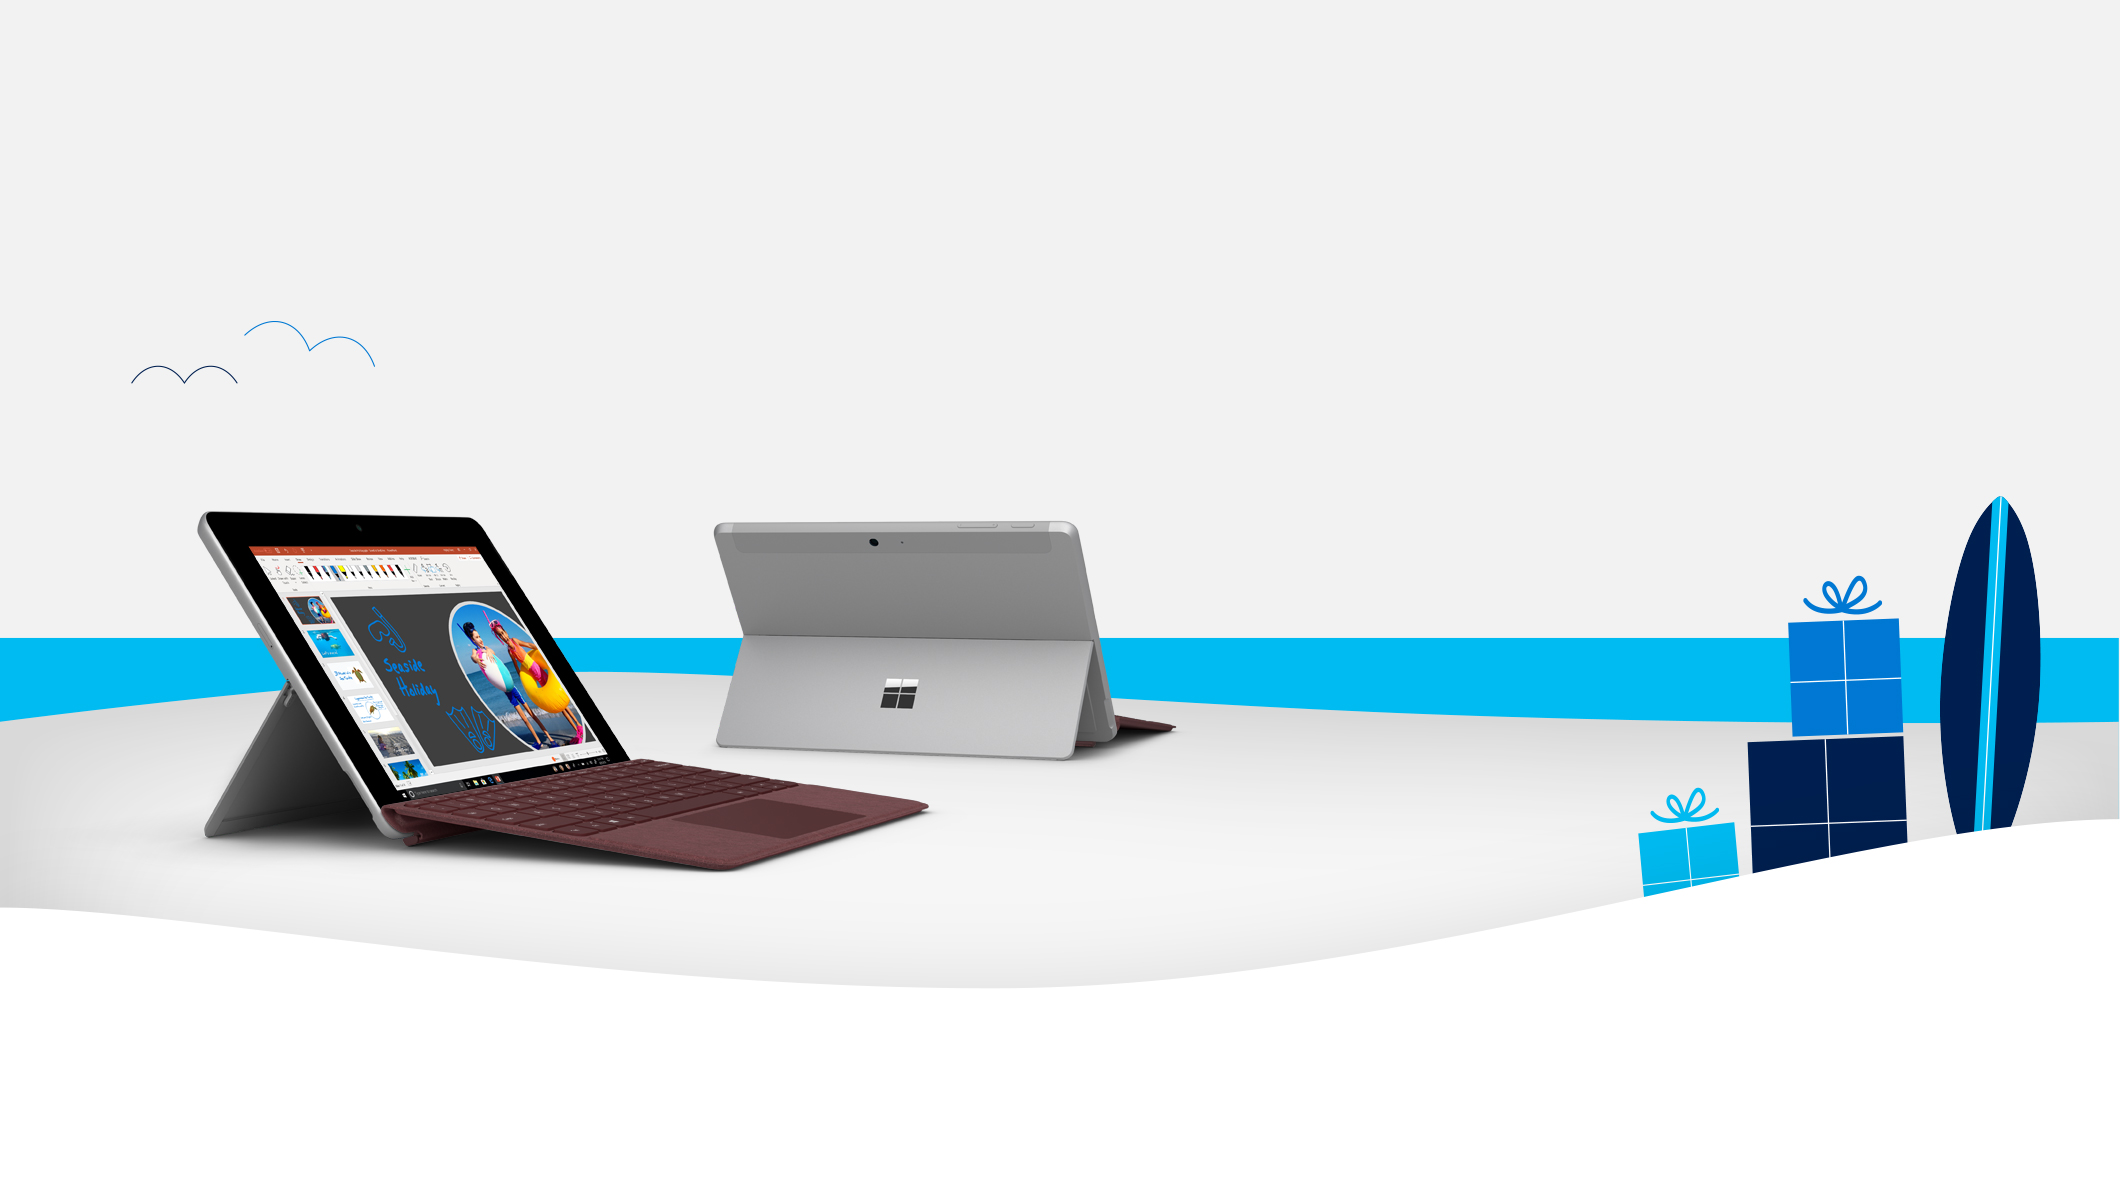 2 Surface Go devices